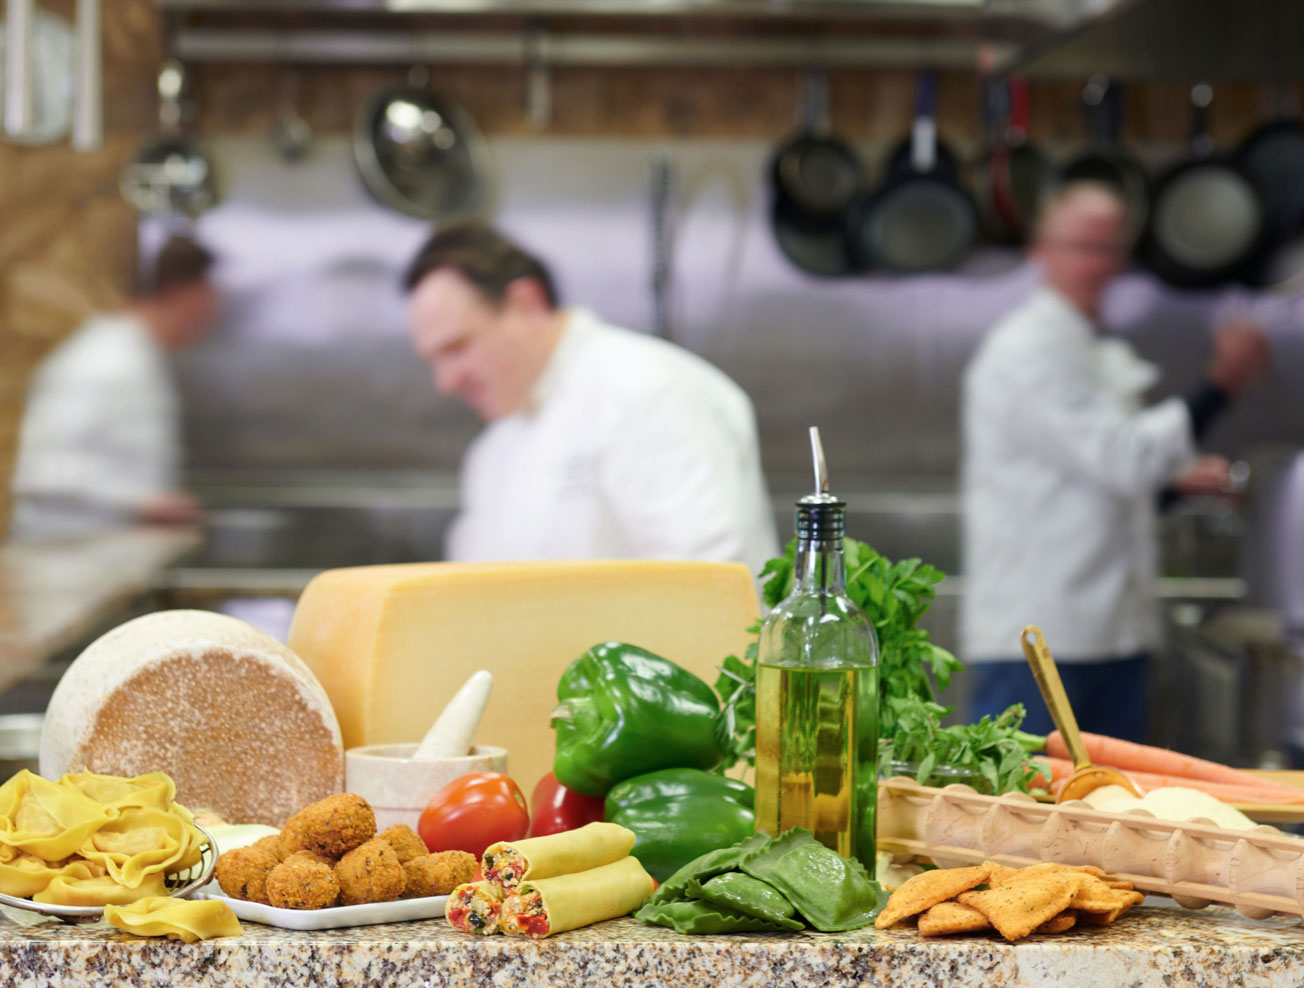 A display of pasta and ingredients with chefs working in the background